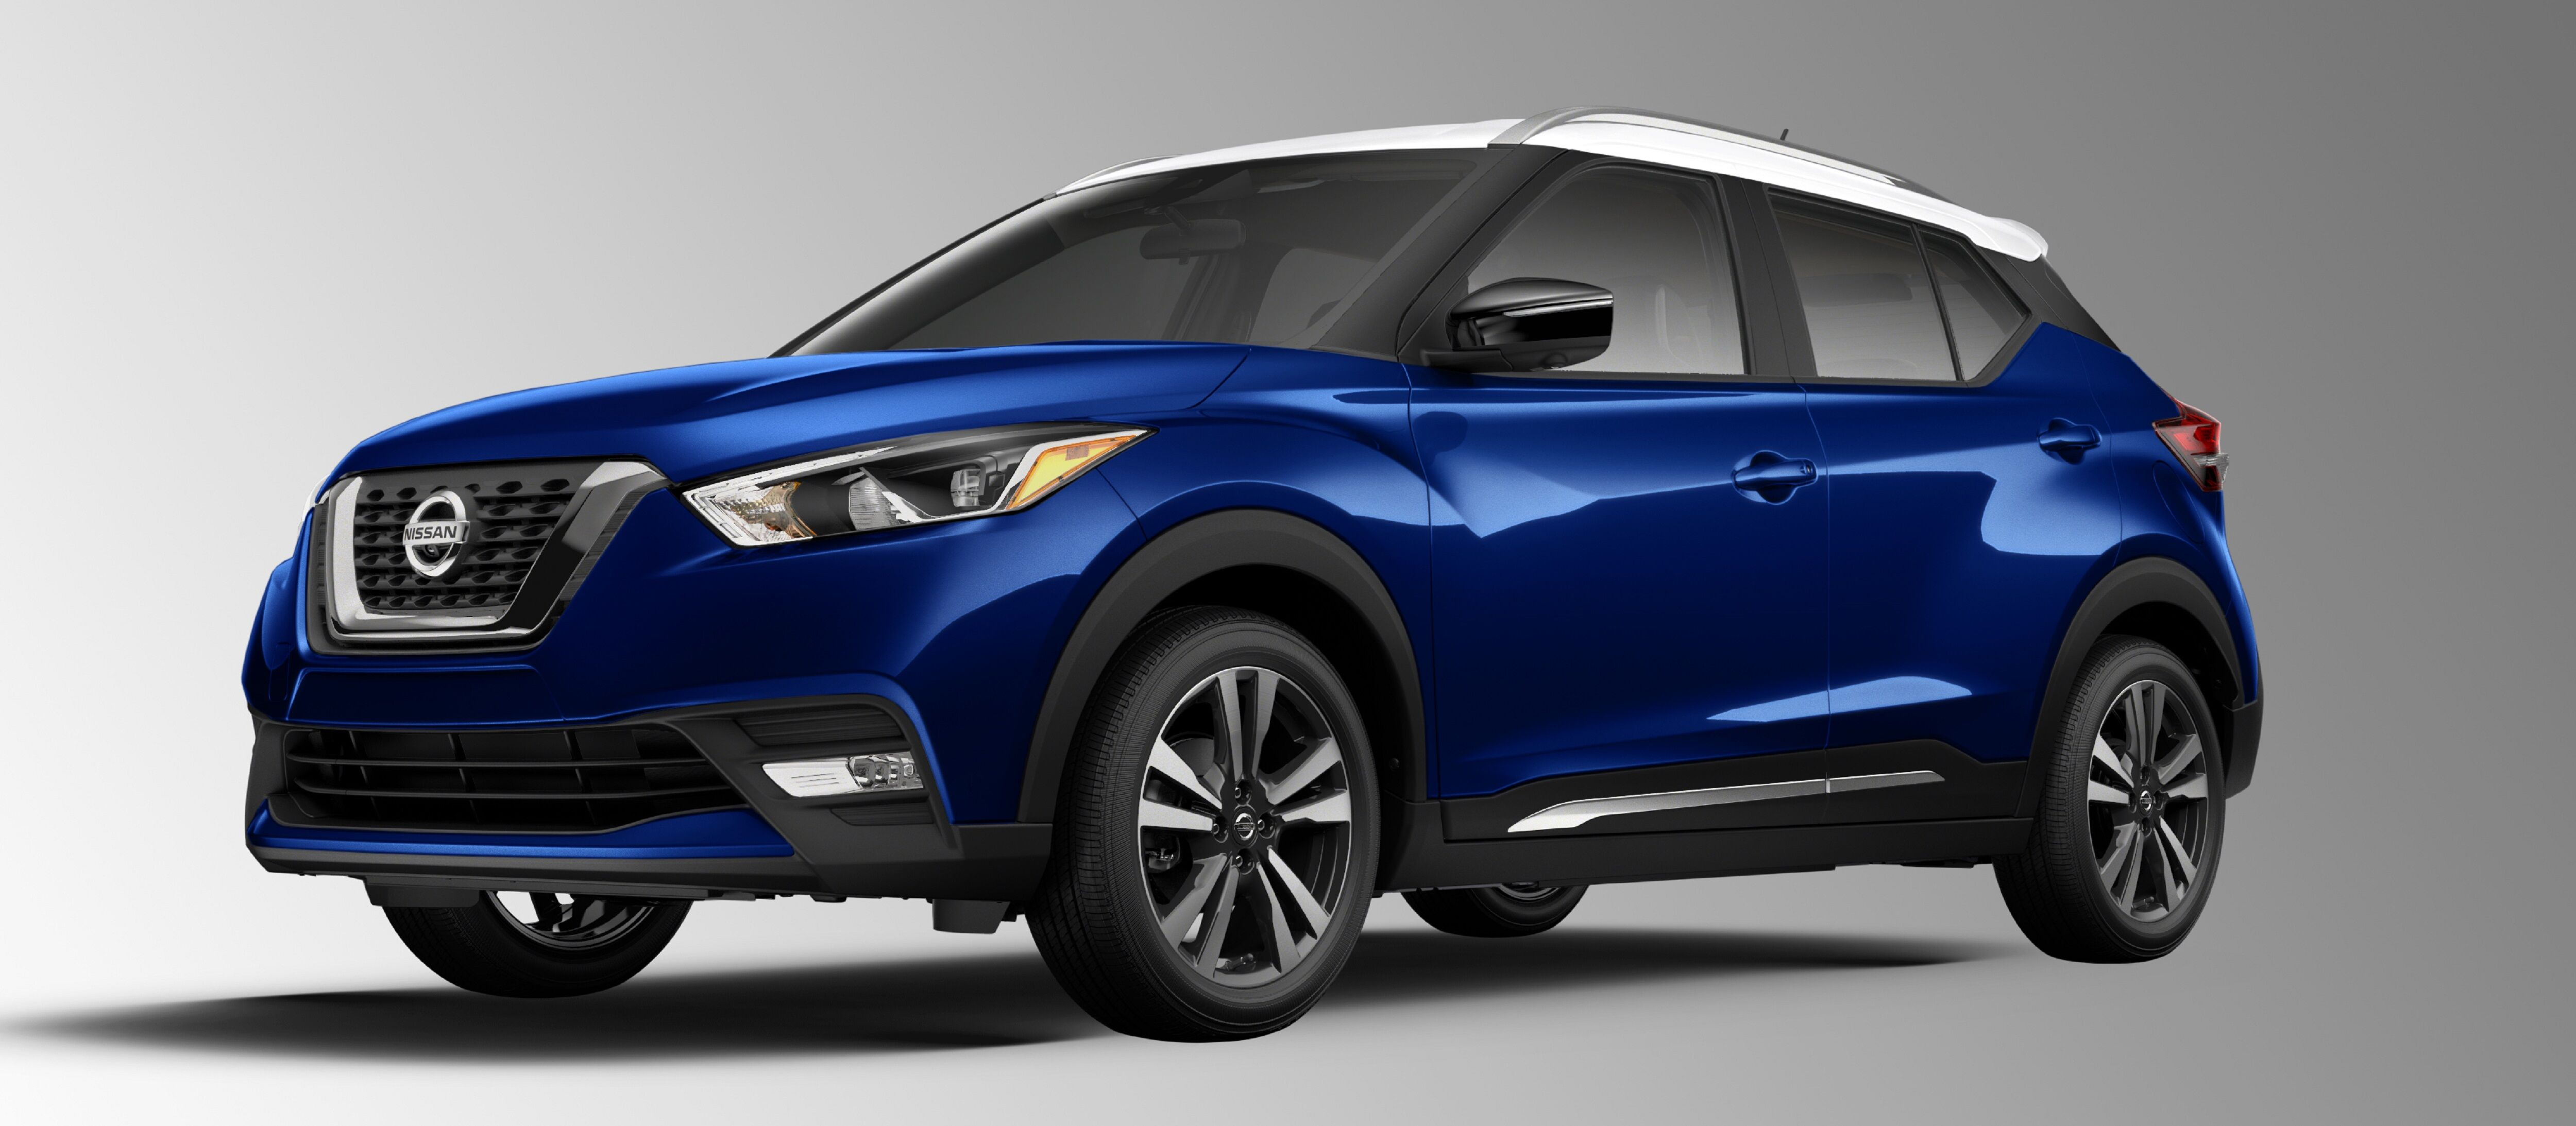 How To Choose The Best Nissan I Find The Right Car For Your Family